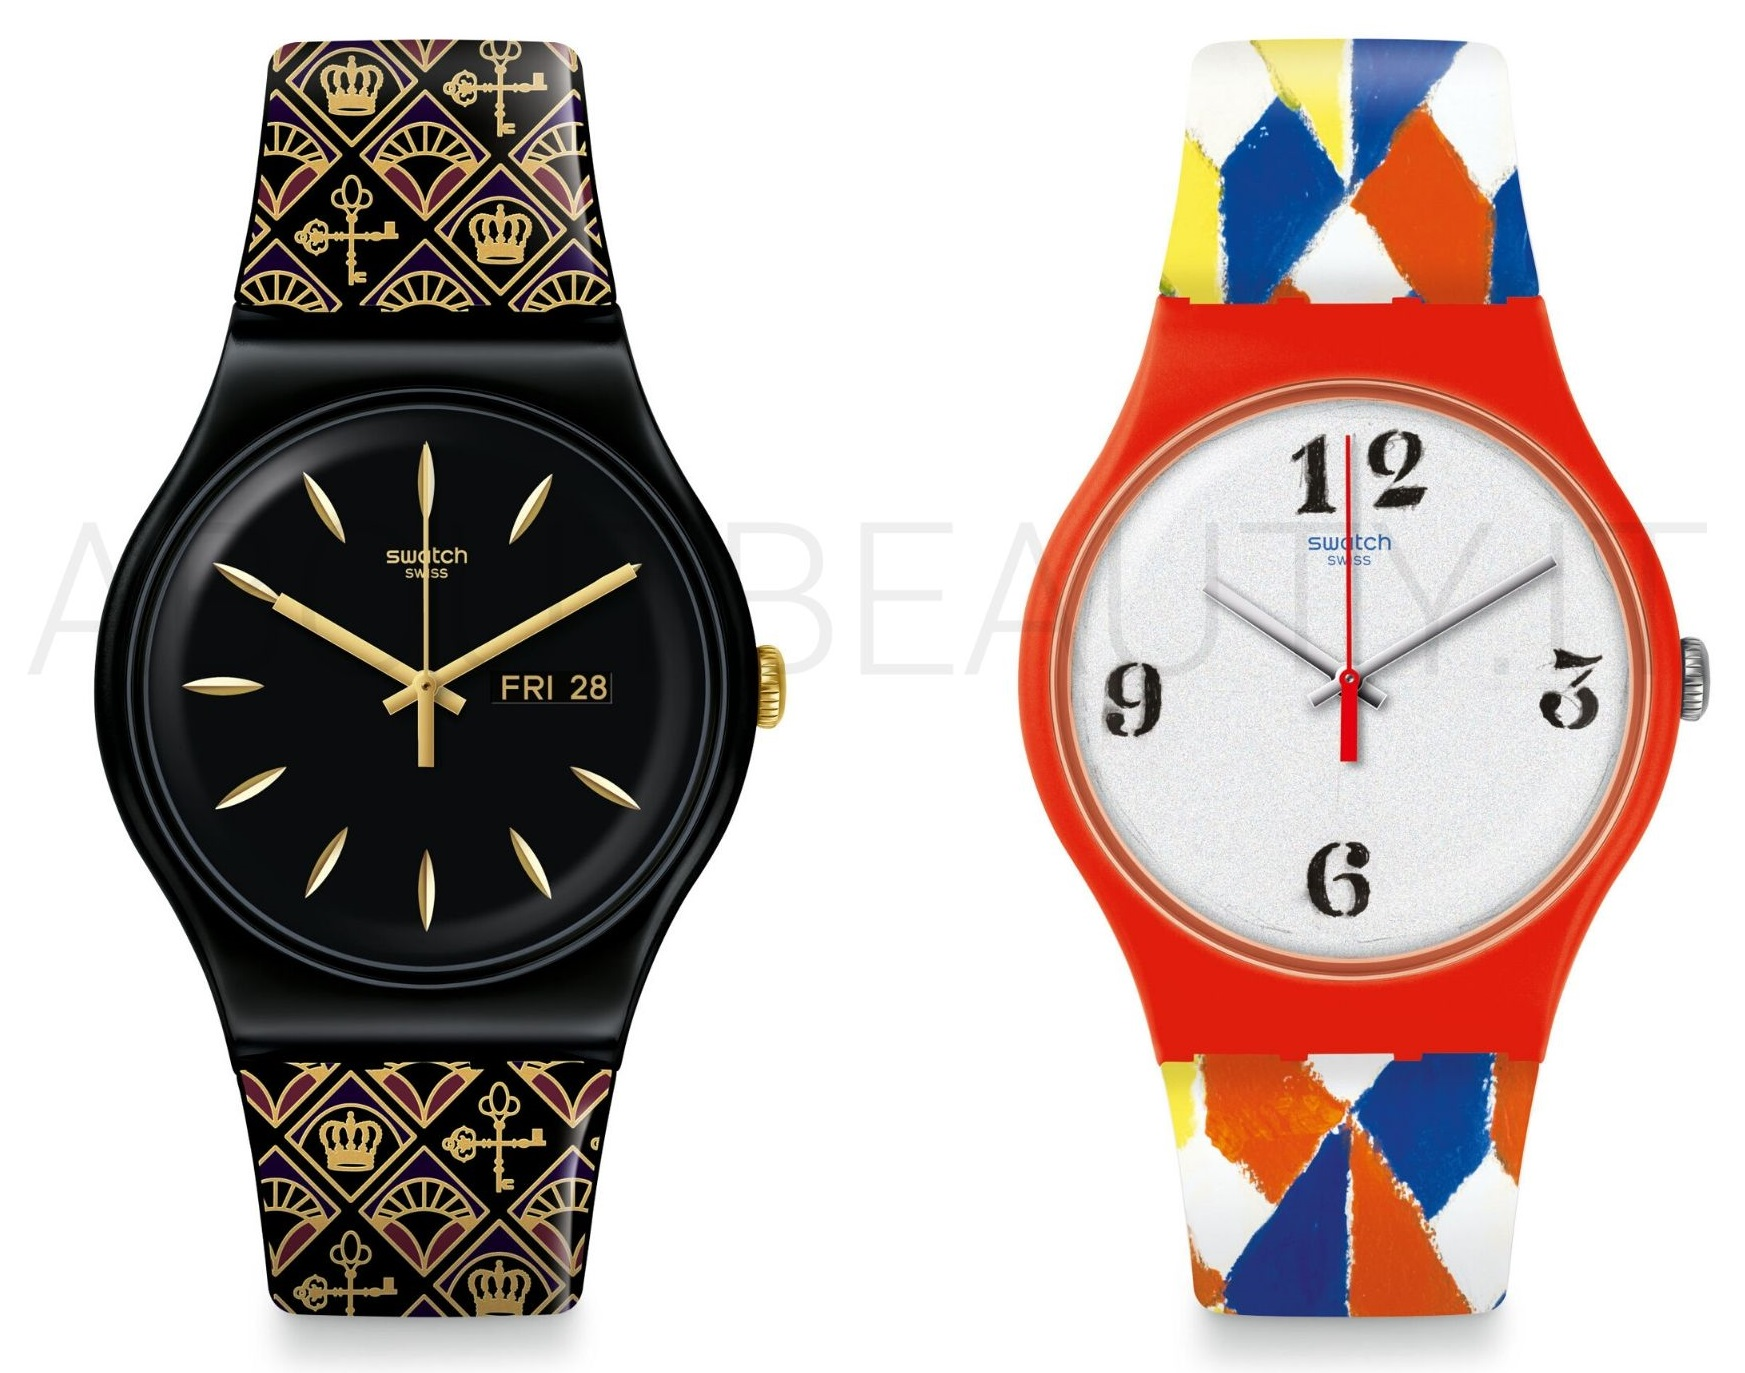 about beauty idee regalo per lui per natale 2019 swatch